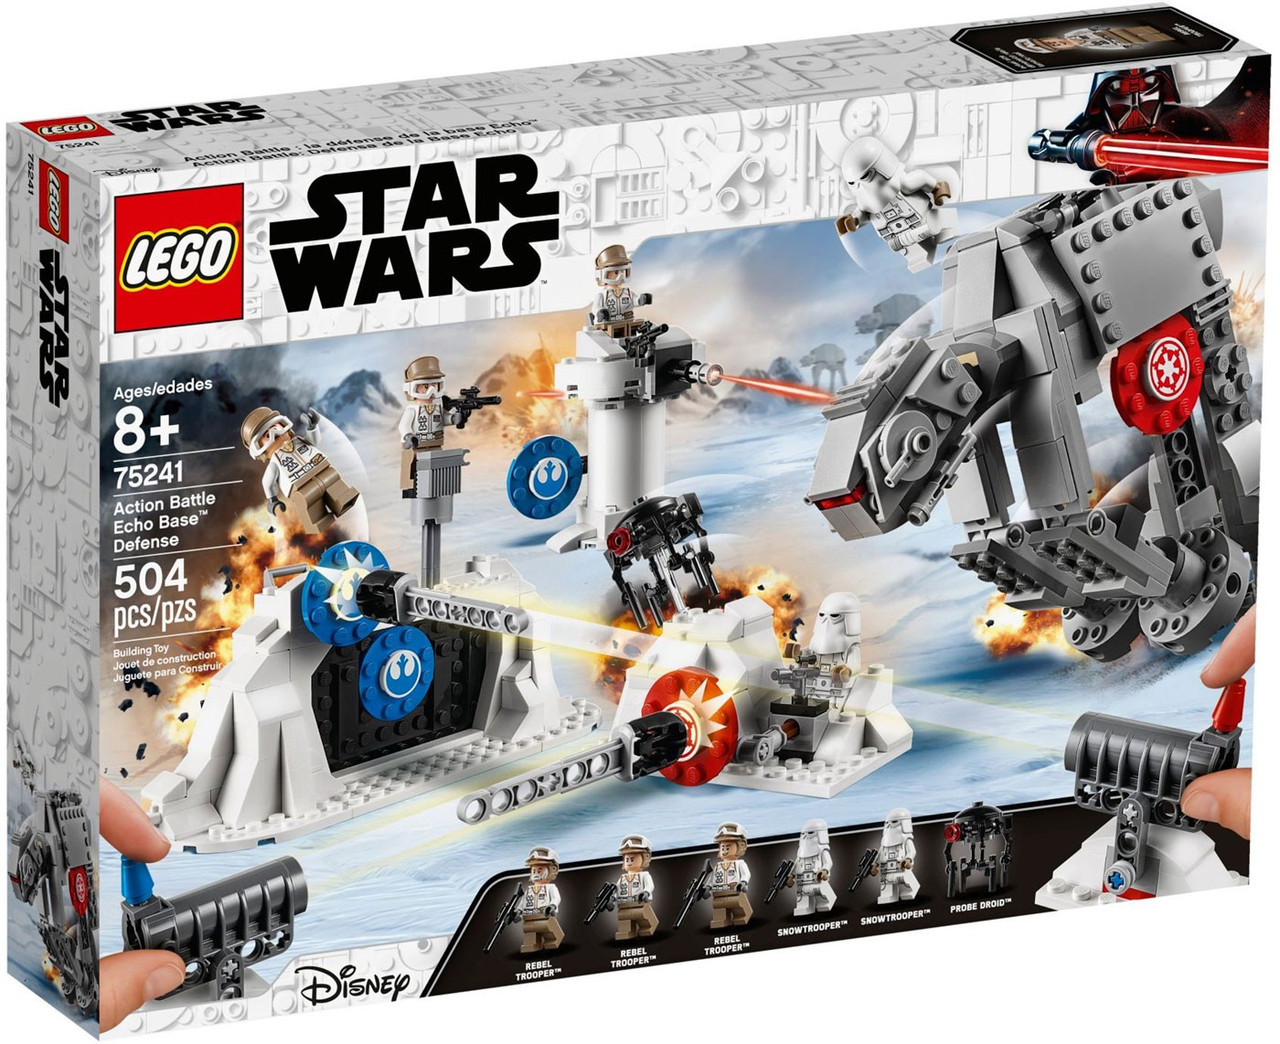 Lego Star Wars Action Battle Echo Base Defense Set 75241